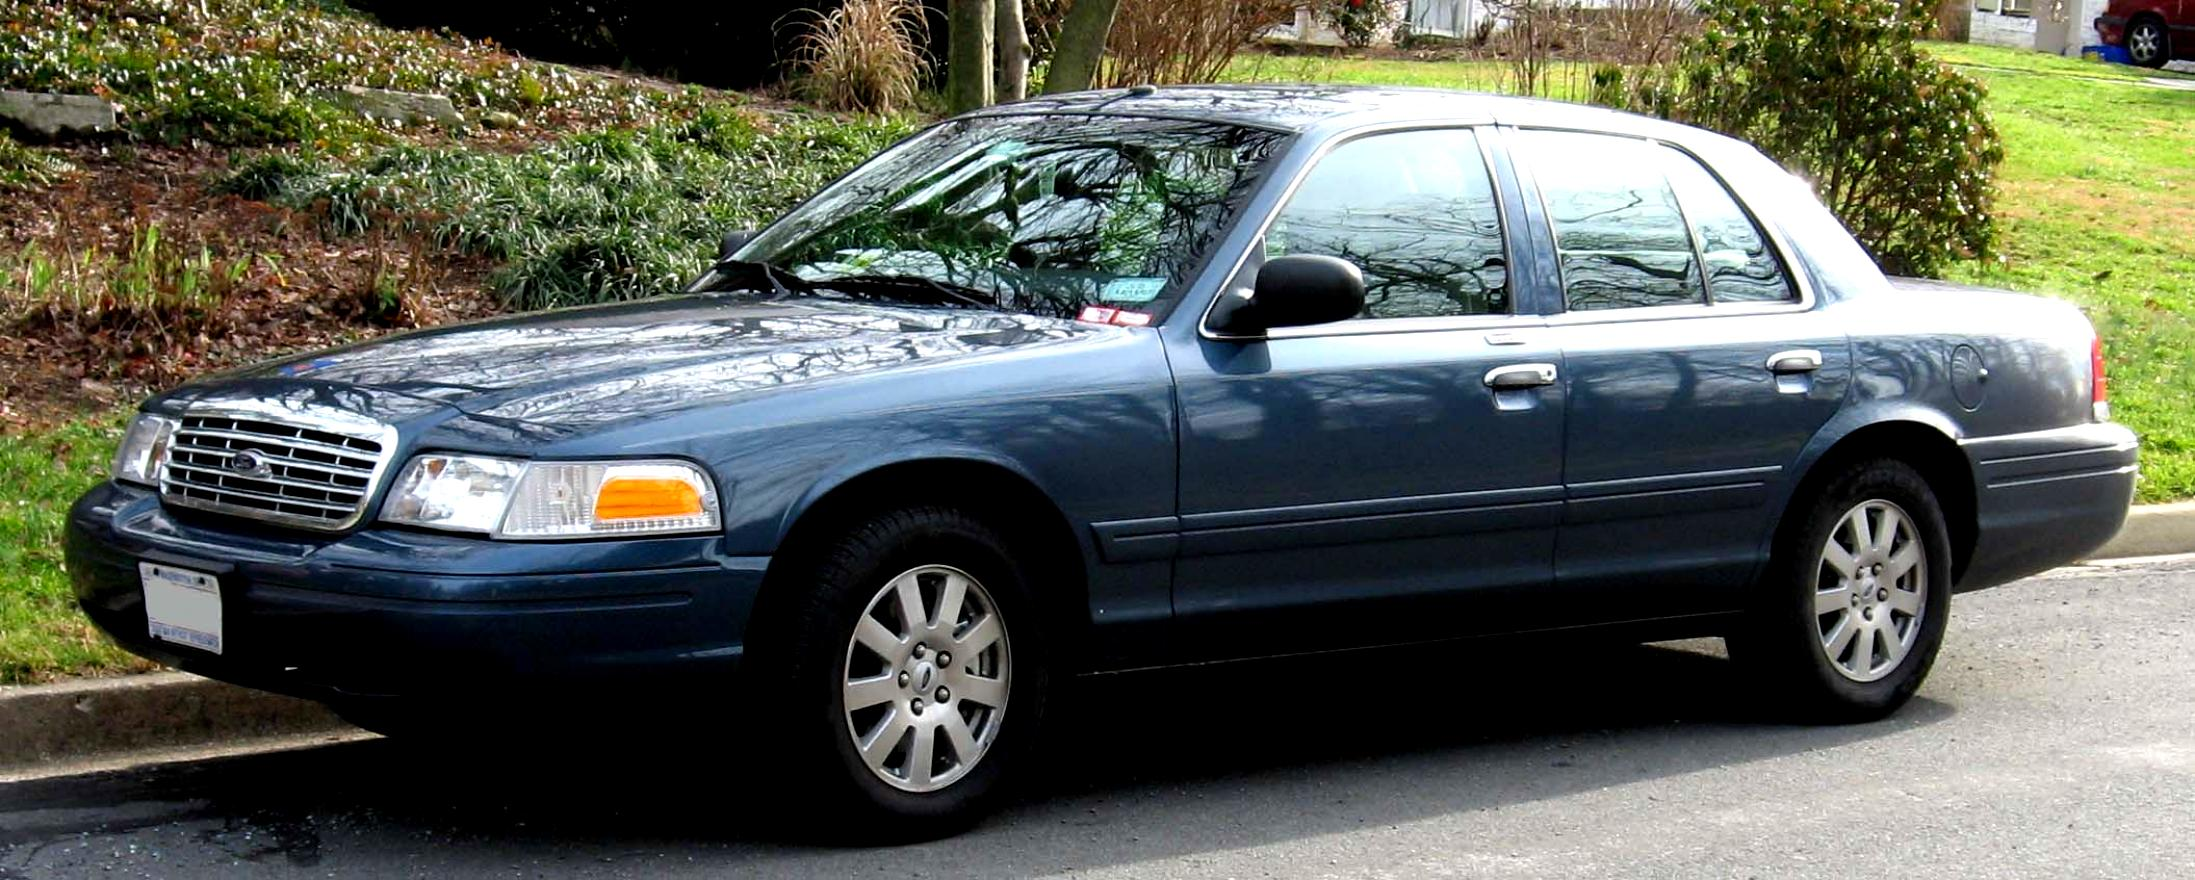 Ford Crown Victoria 1998 #2